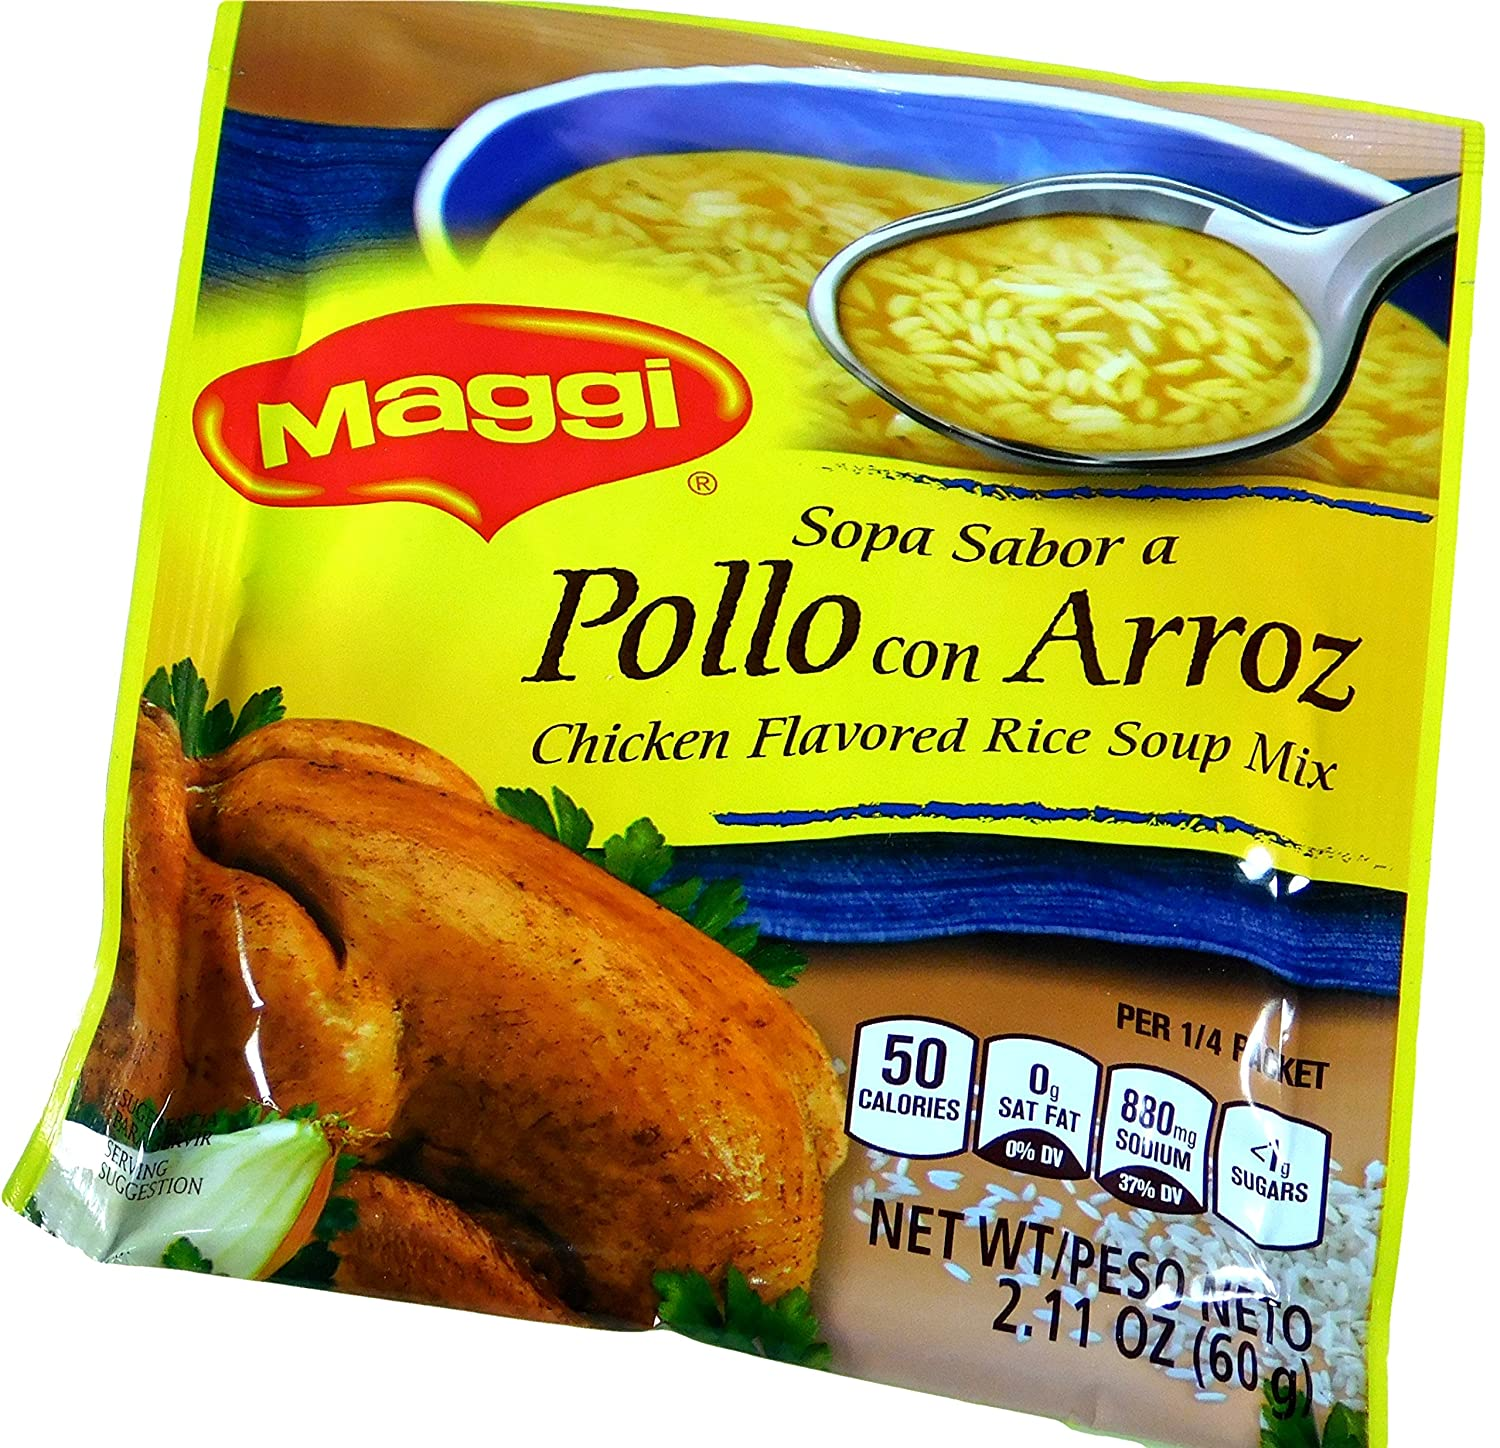 Amazon.com : Maggi Imported Sopa Sabor a Pollo con Arroz Chicken Flavored Rice Soup 2.11 oz / 60 gr. (Pack of 12) : Grocery & Gourmet Food